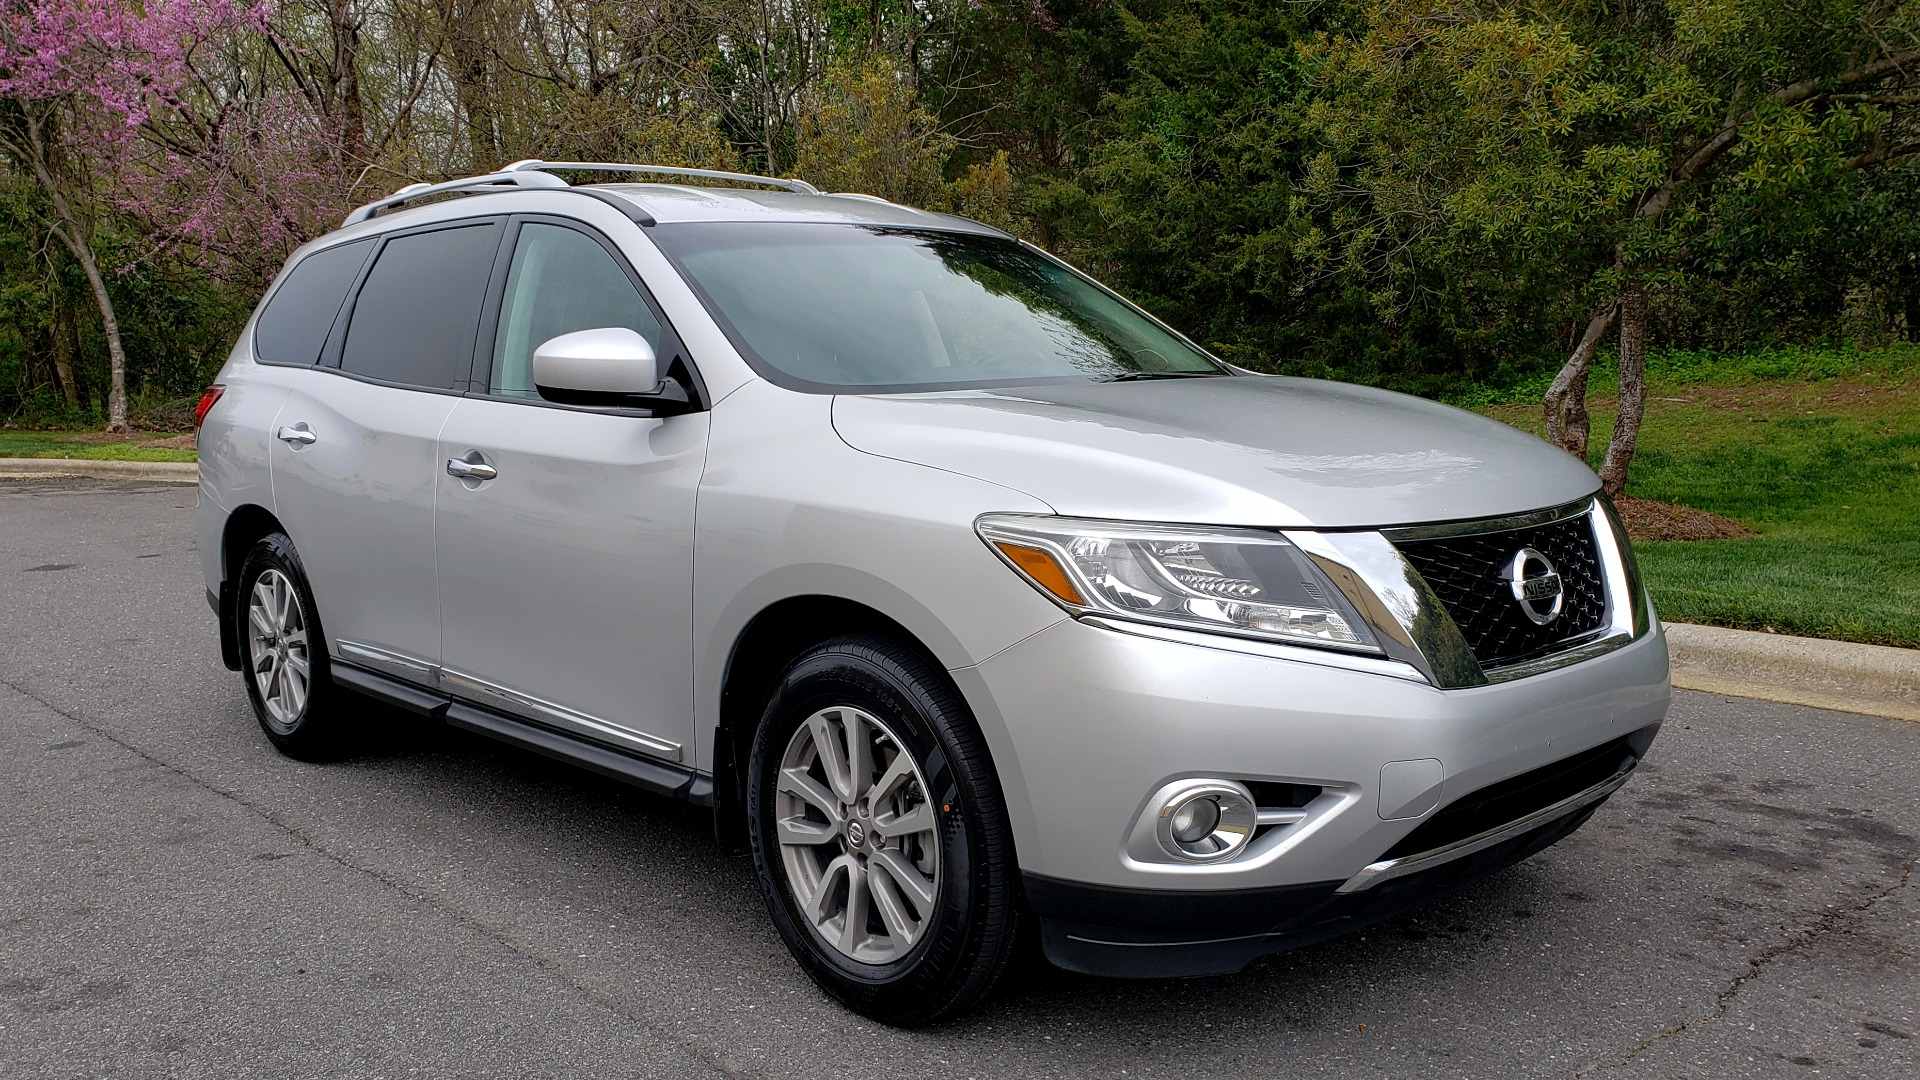 Used 2014 Nissan PATHFINDER SL TECH PKG / 4WD / NAV / SUNROOF / REARVIEW / 3-ROW for sale Sold at Formula Imports in Charlotte NC 28227 4